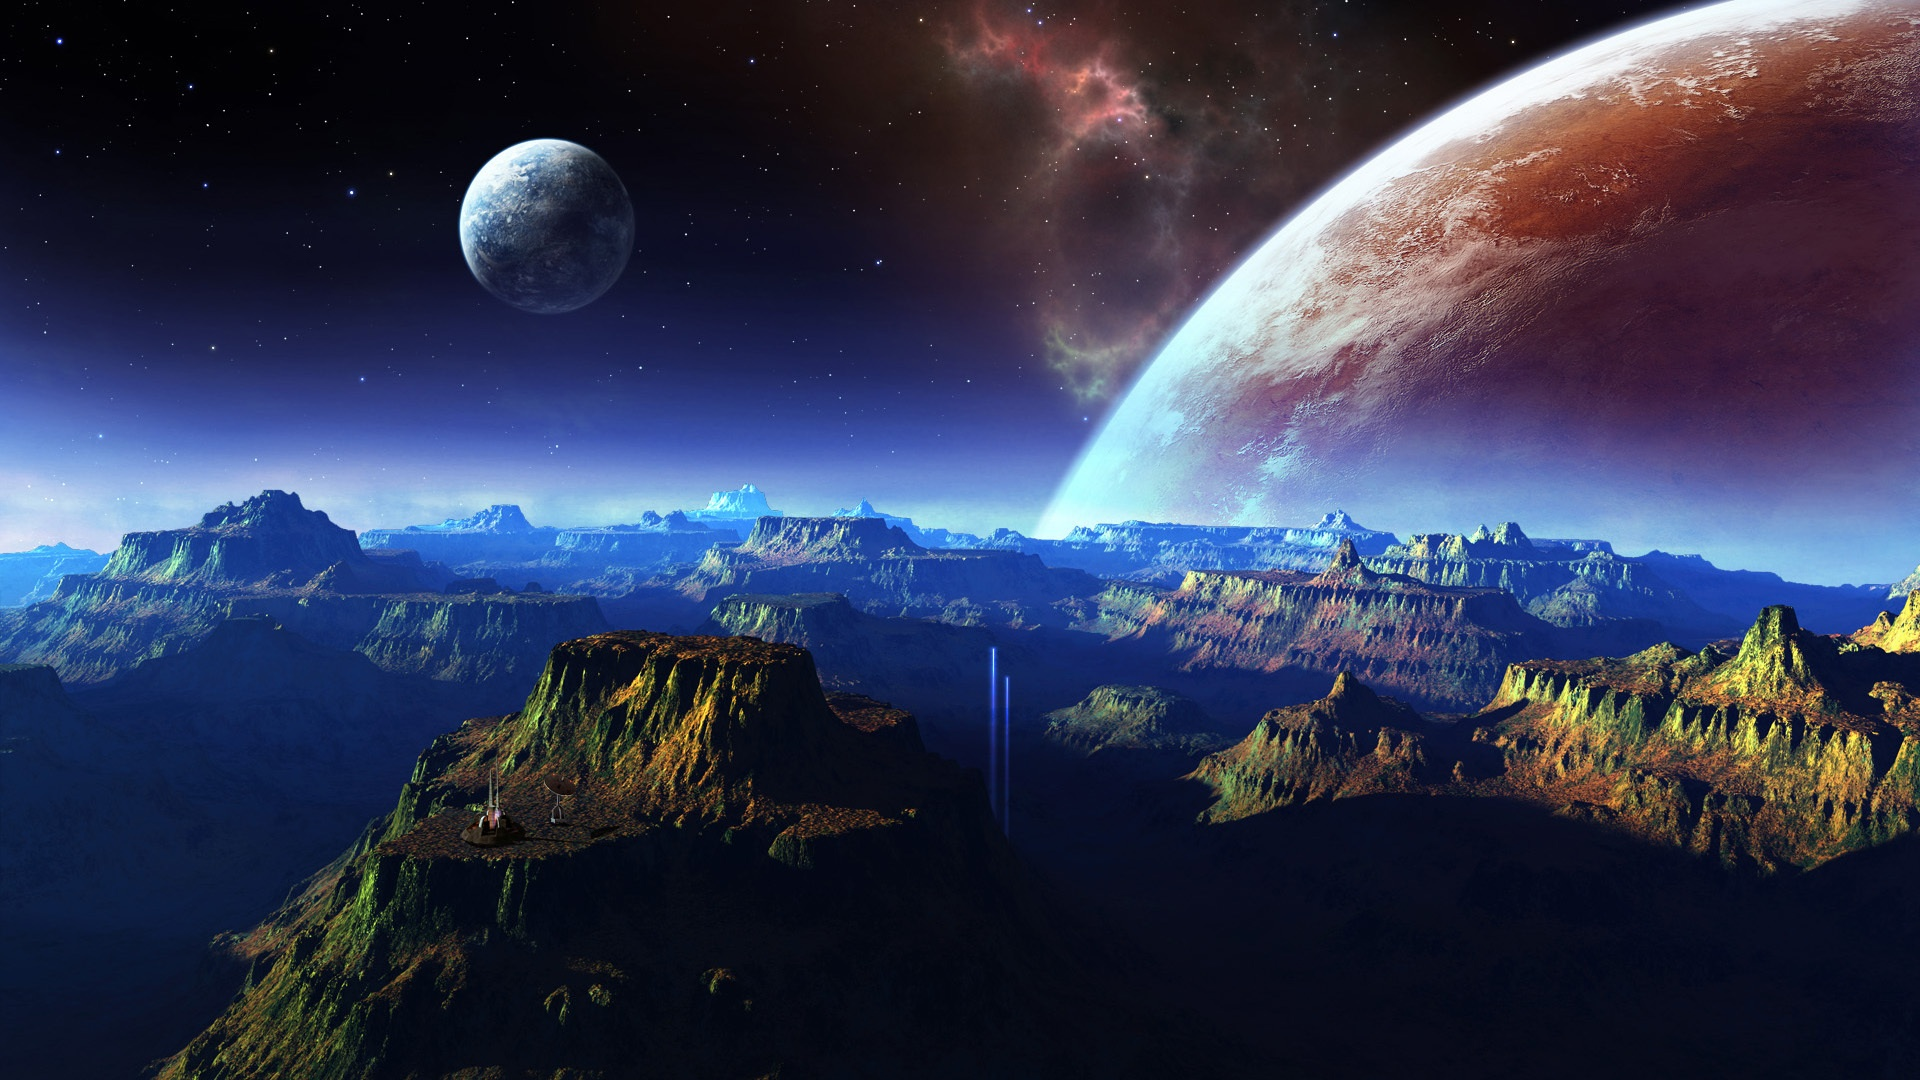 Fantastic-scenery-mountains-space-planet_1920x1080.jpg